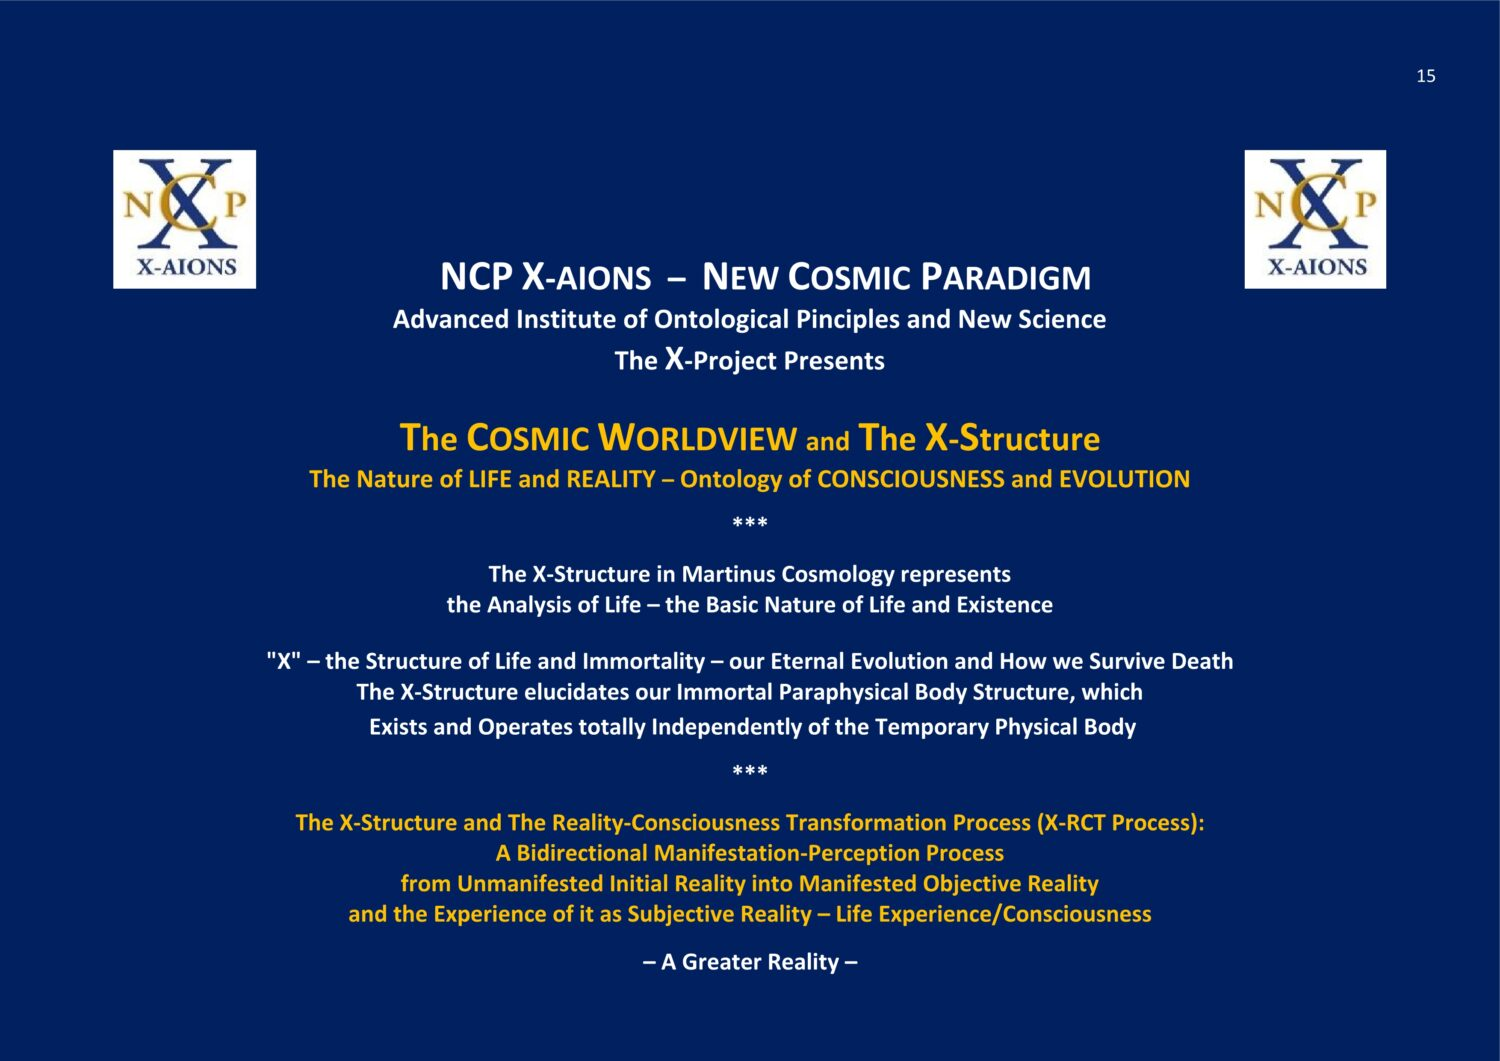 NCP X-AIONS The Cosmic Worldview Consciousness and Evolution